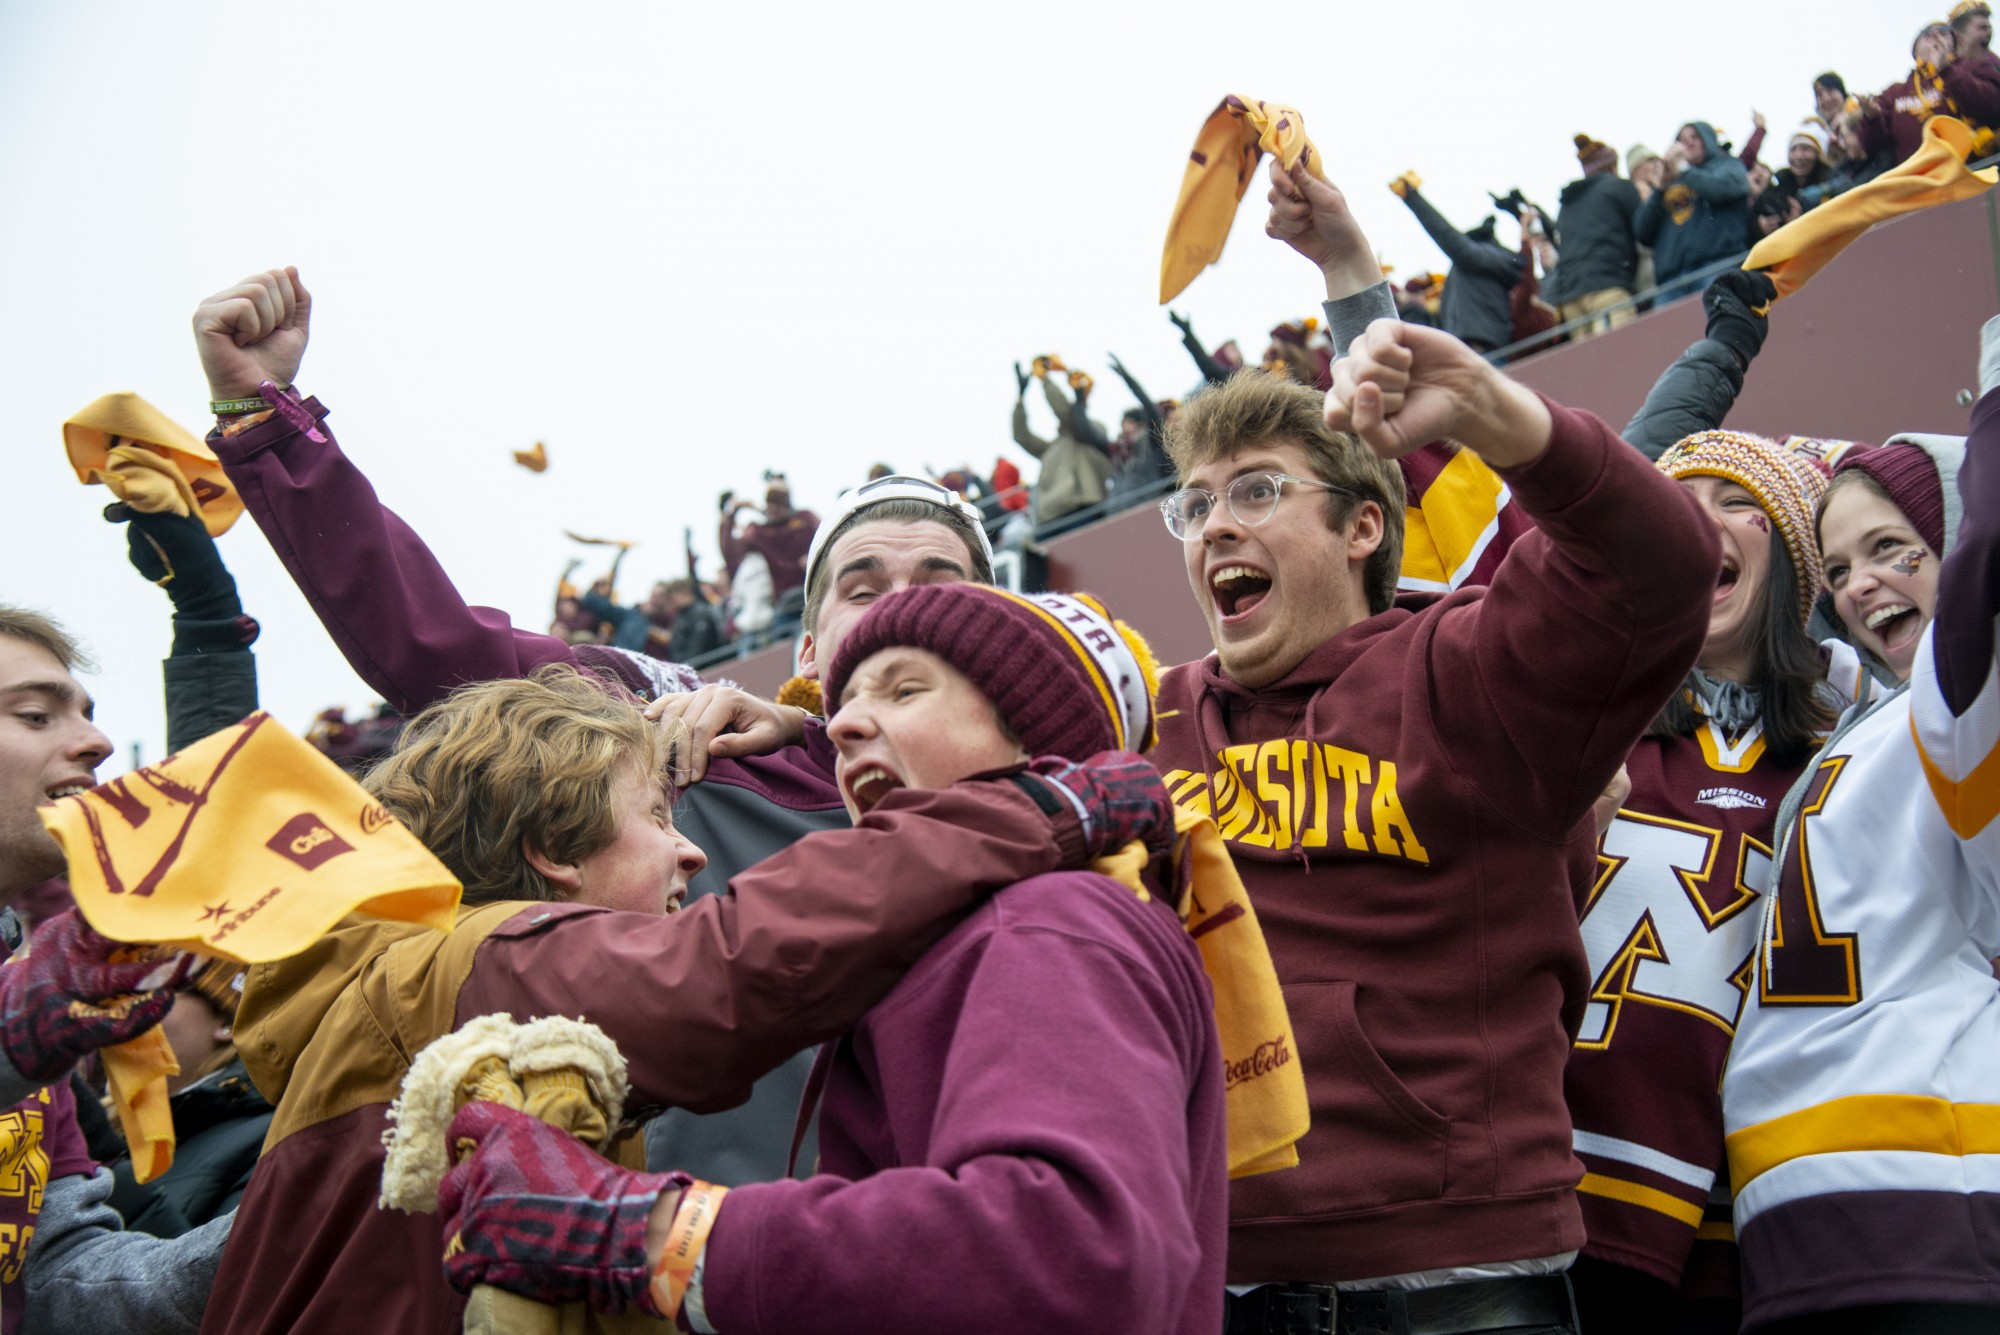 Fans cheer for the Gophers after winning the game against Penn State at TCF Bank Stadium Saturday, Nov. 9, 2019. The Gophers won 31-26 bringing their record to 9-0. A first since 1904.